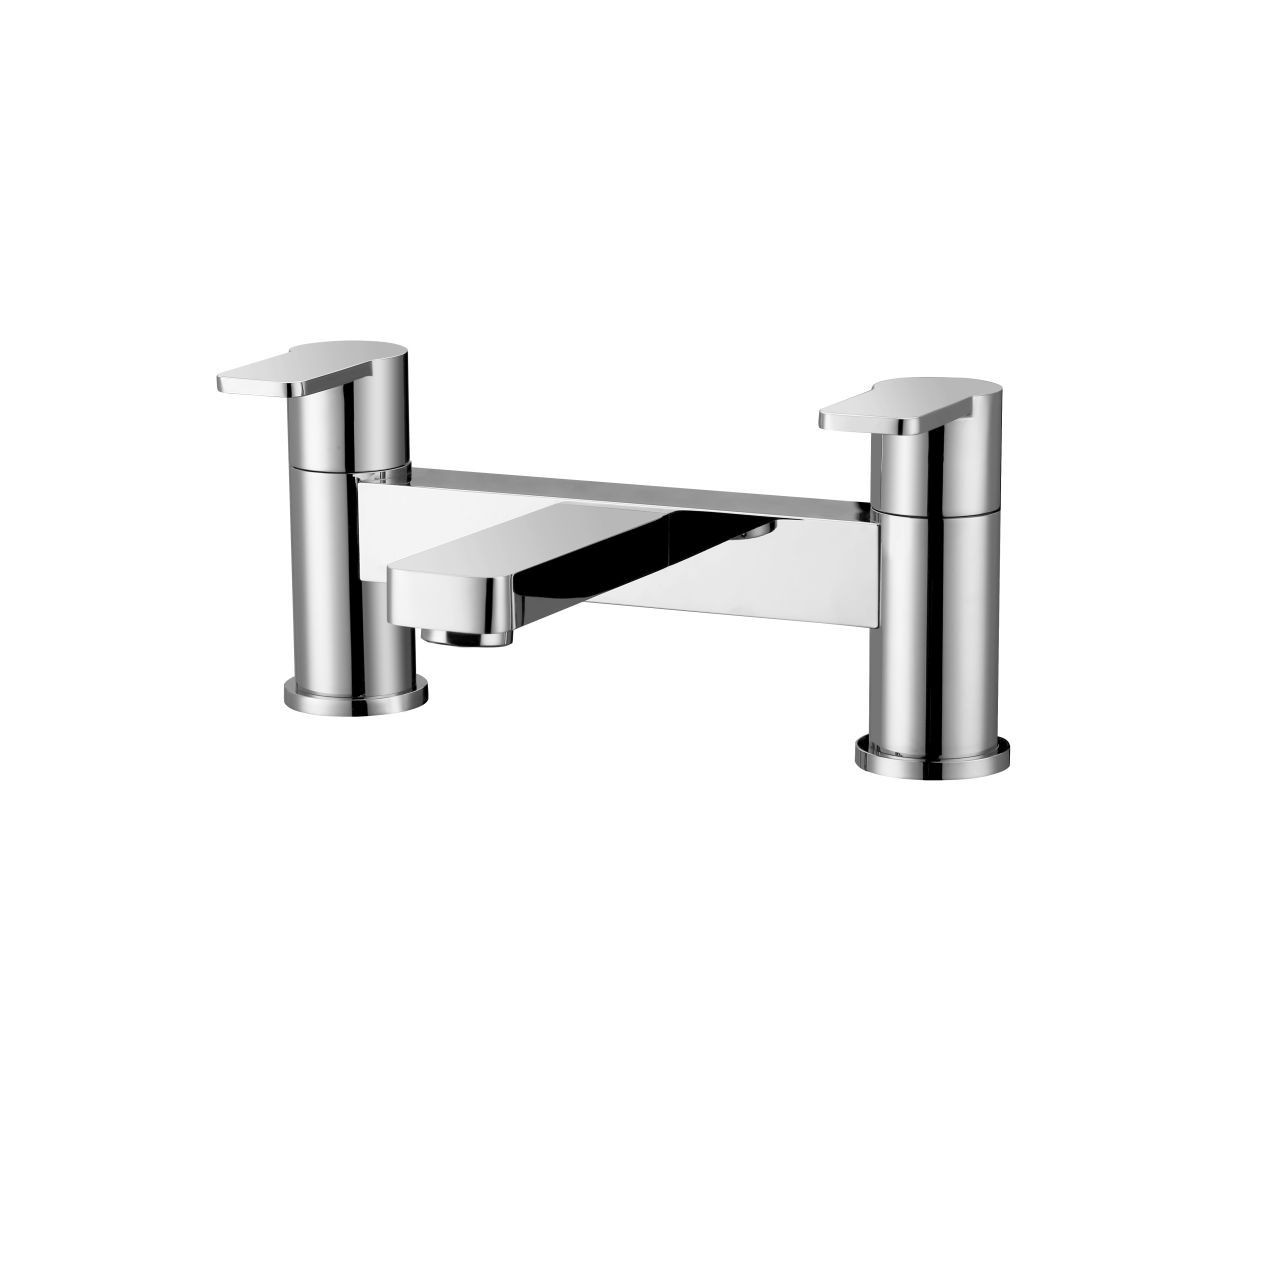 RAK Tonique Bath Filler Tap - RAKTON3004